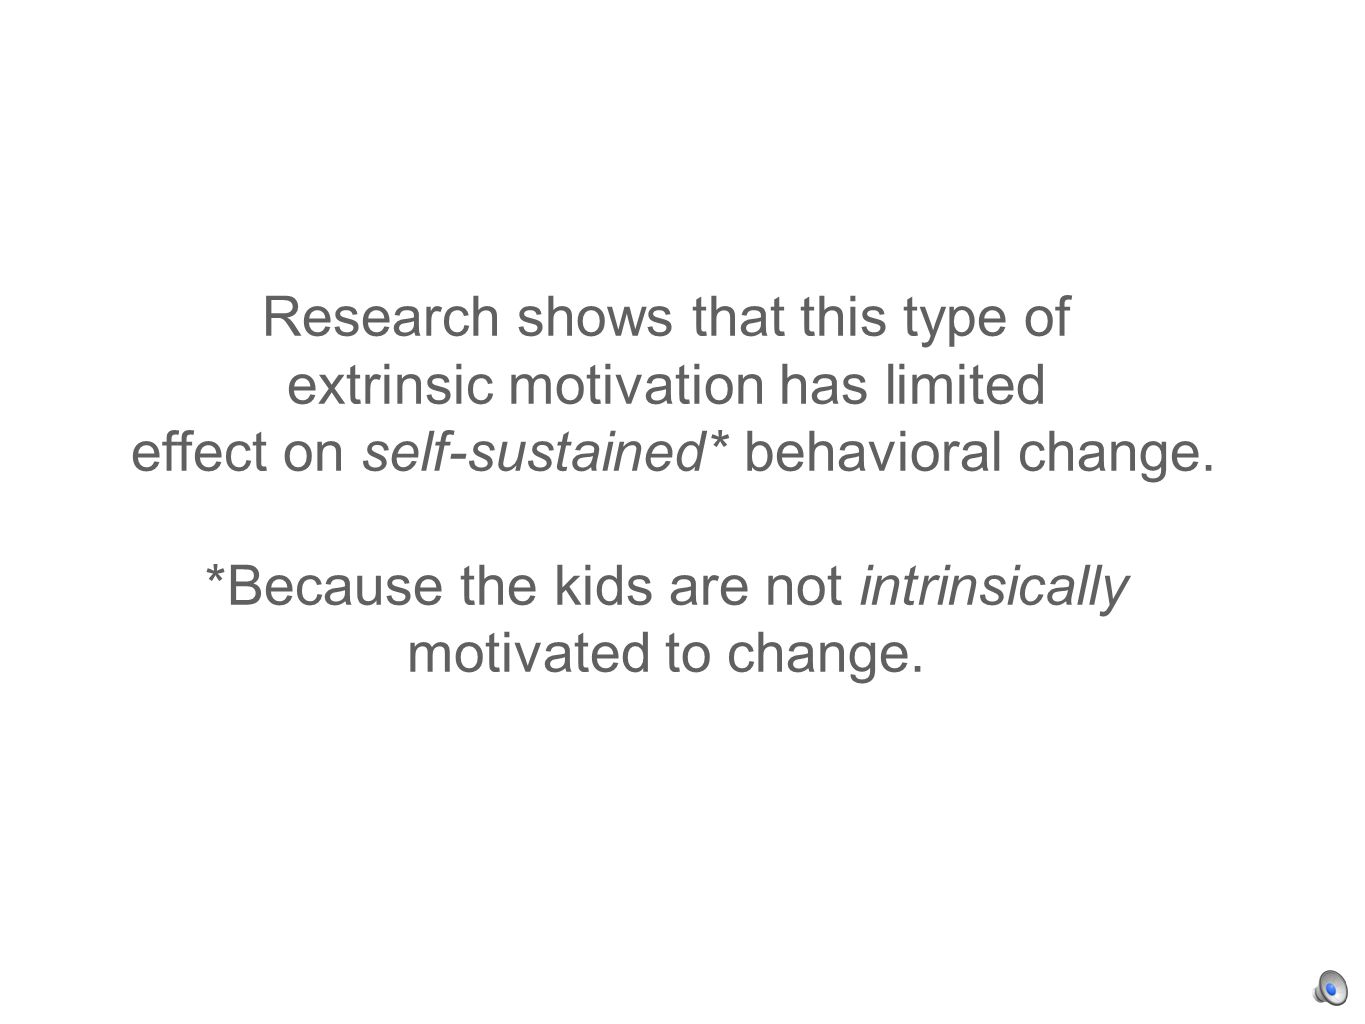 Research shows that this type of extrinsic motivation has limited effect on self-sustained* behavioral change.